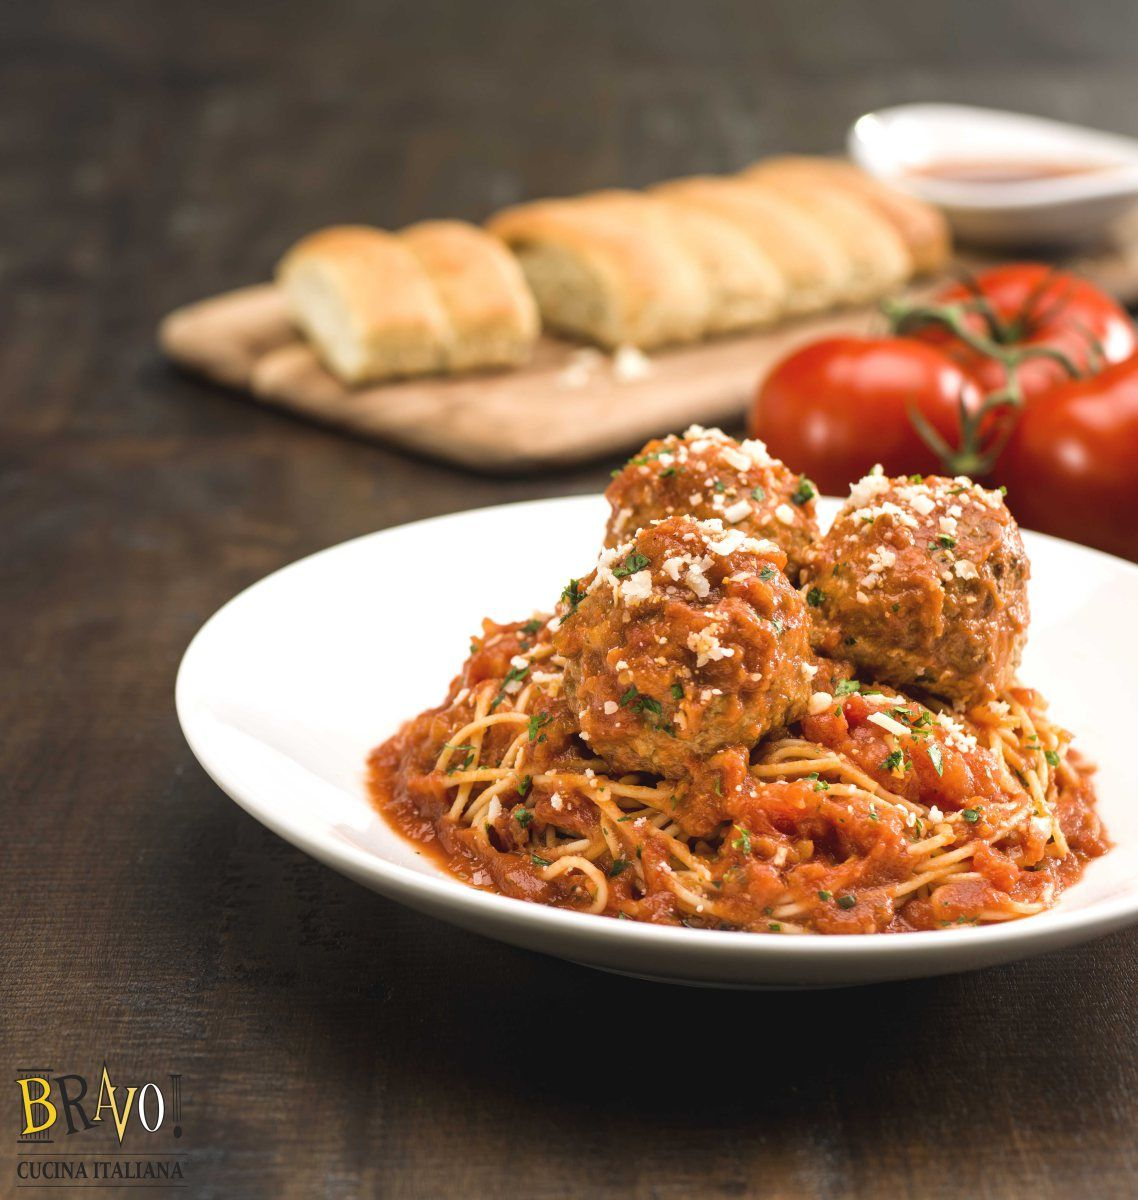 Welcome to A Taste of Italian!